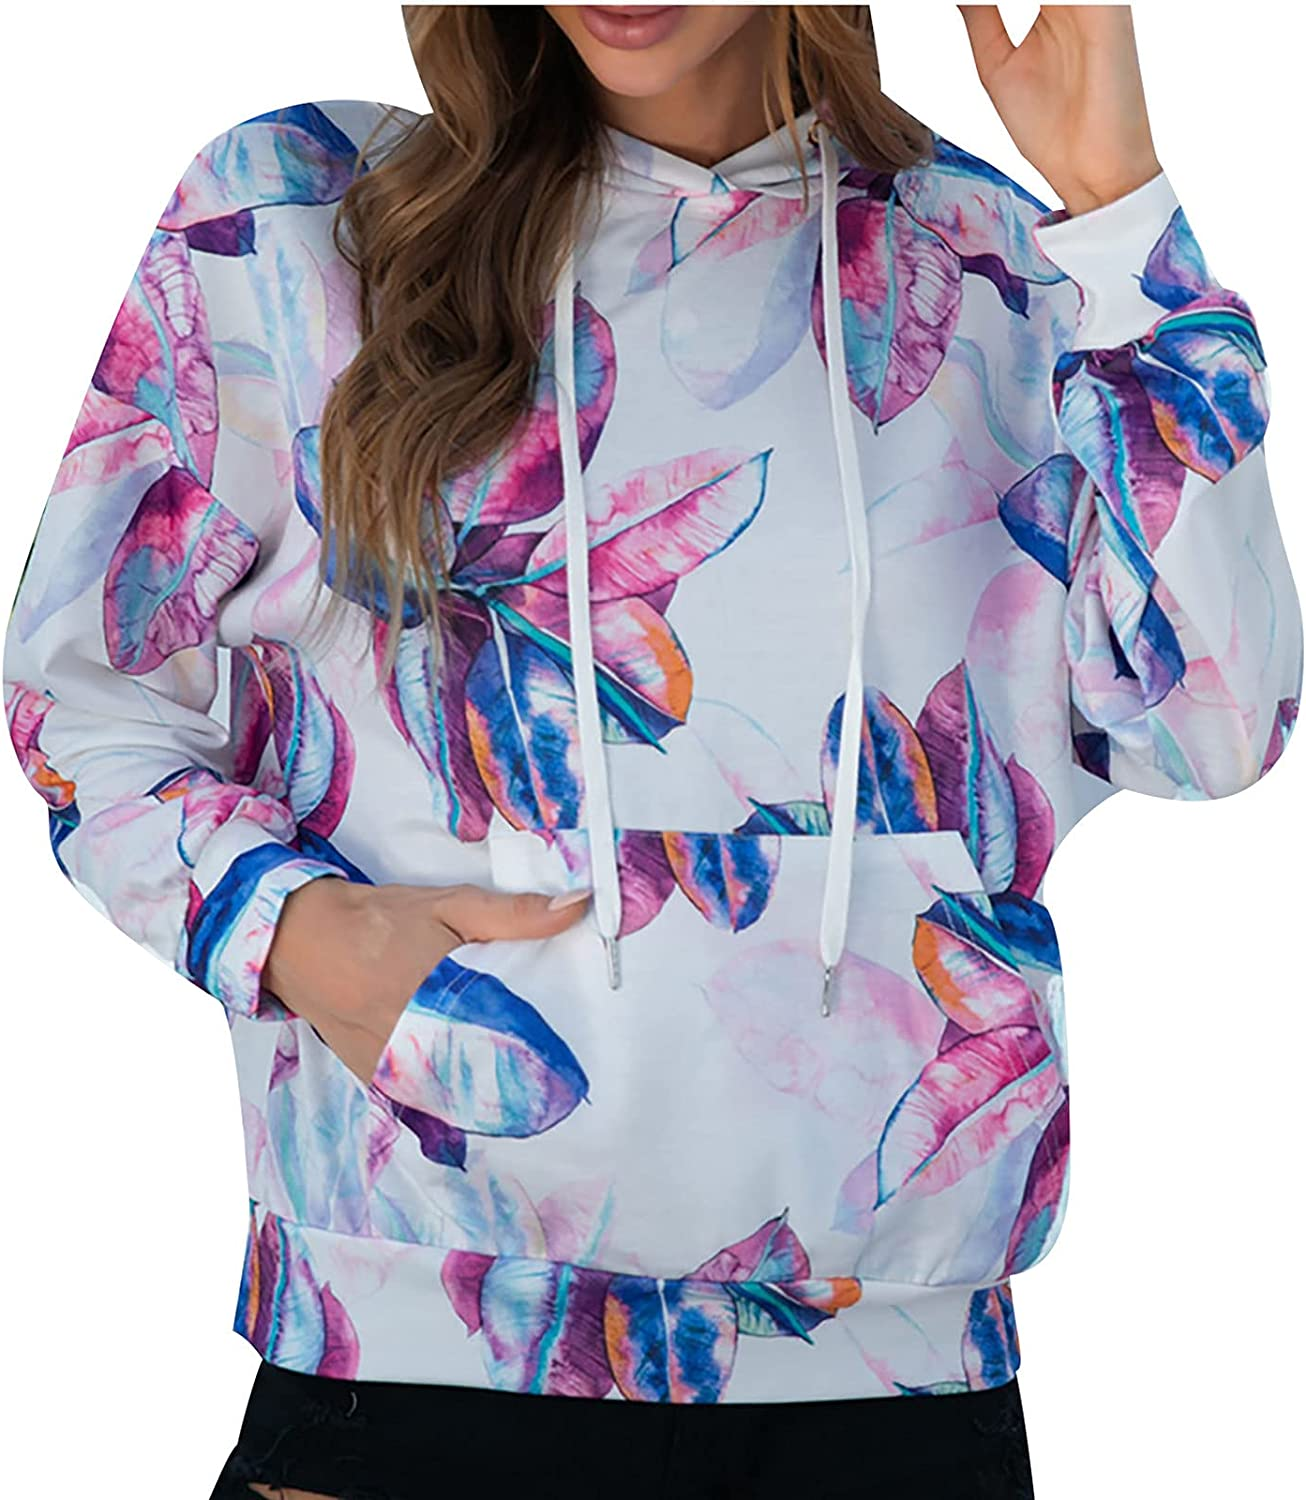 Women's Peach Blossom And Lotus Leaf Print Long Sleeve Hoodies Pullover With Pockets Casual Fall Sweatshirt